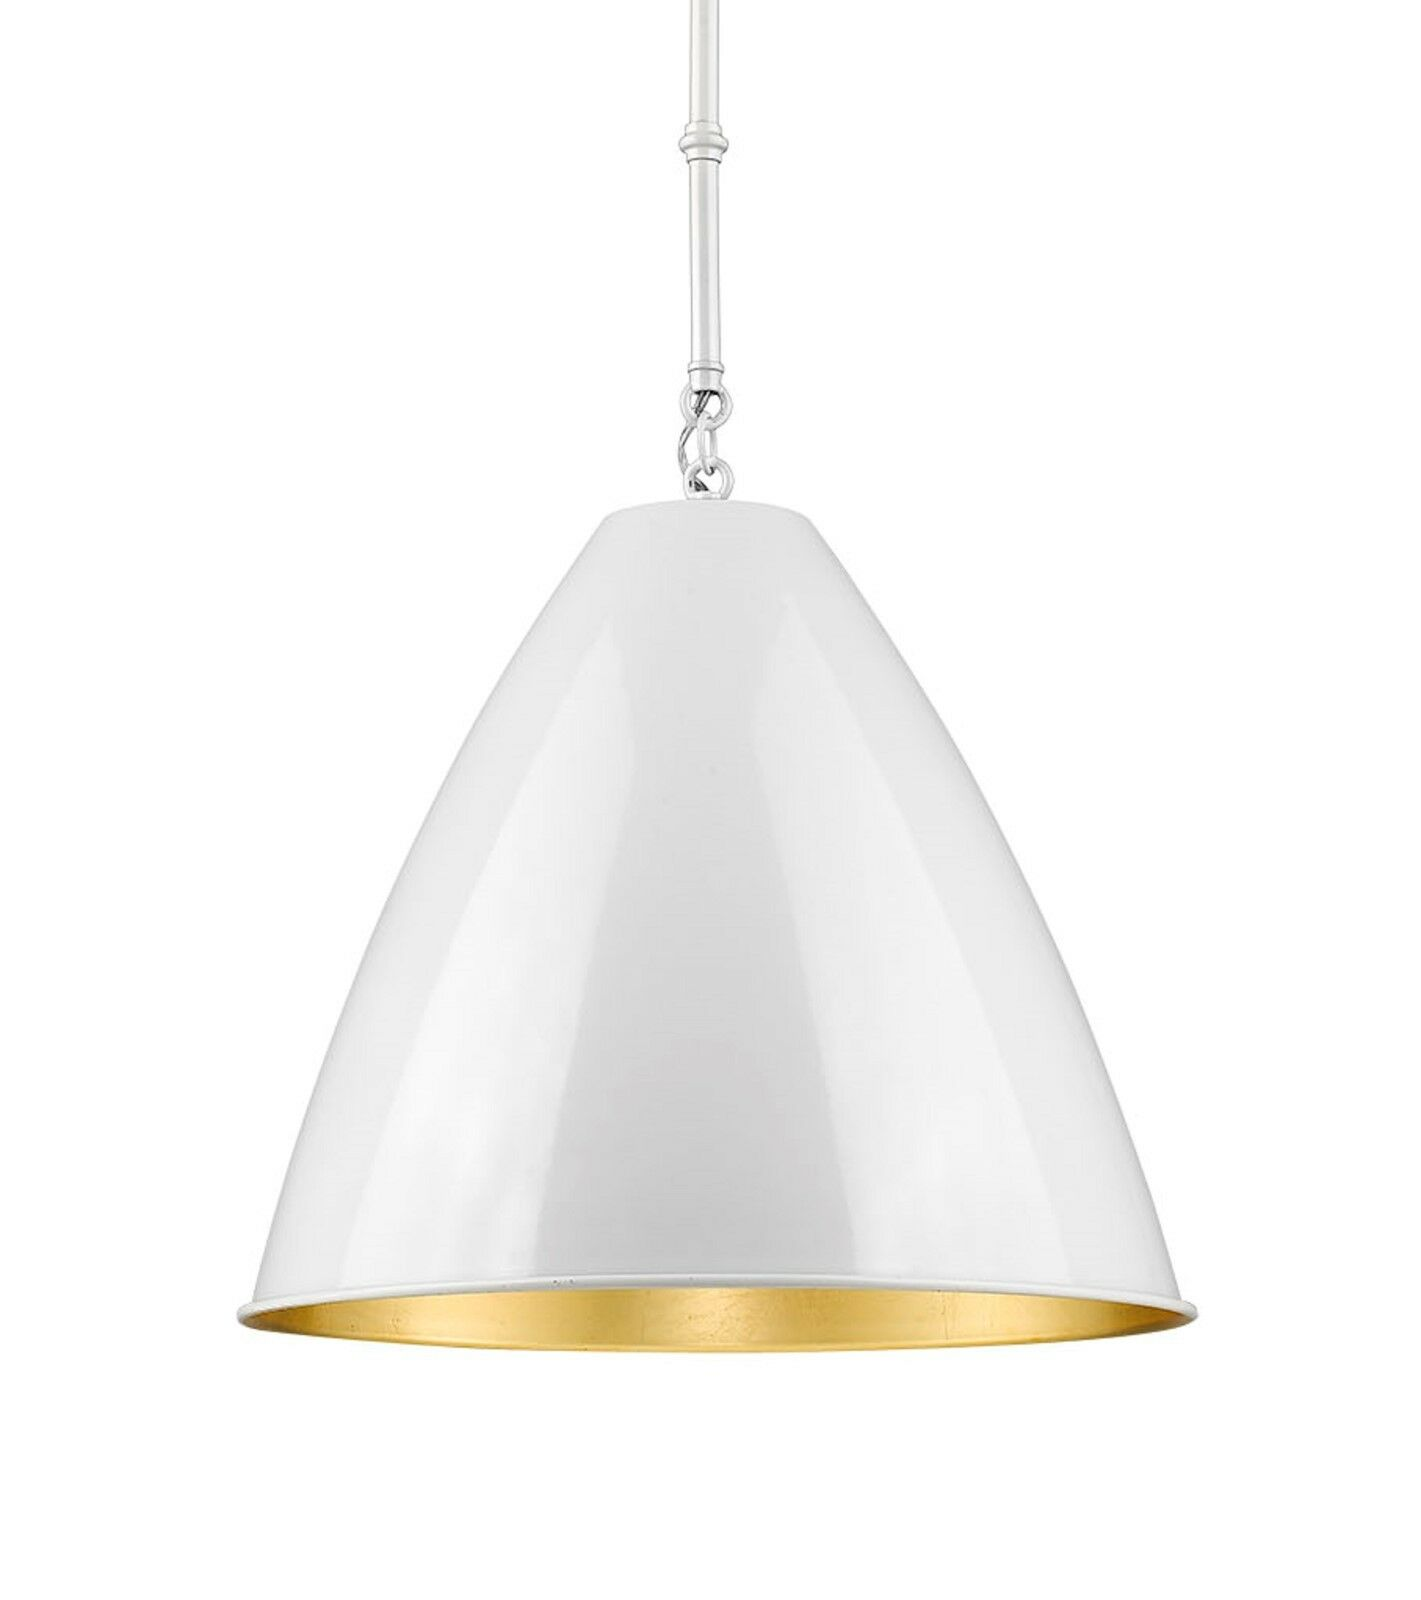 1-Light Industrial 15 D Cone Pendant Mid-Century Modern Weiß &Gold Leaf Kitchen